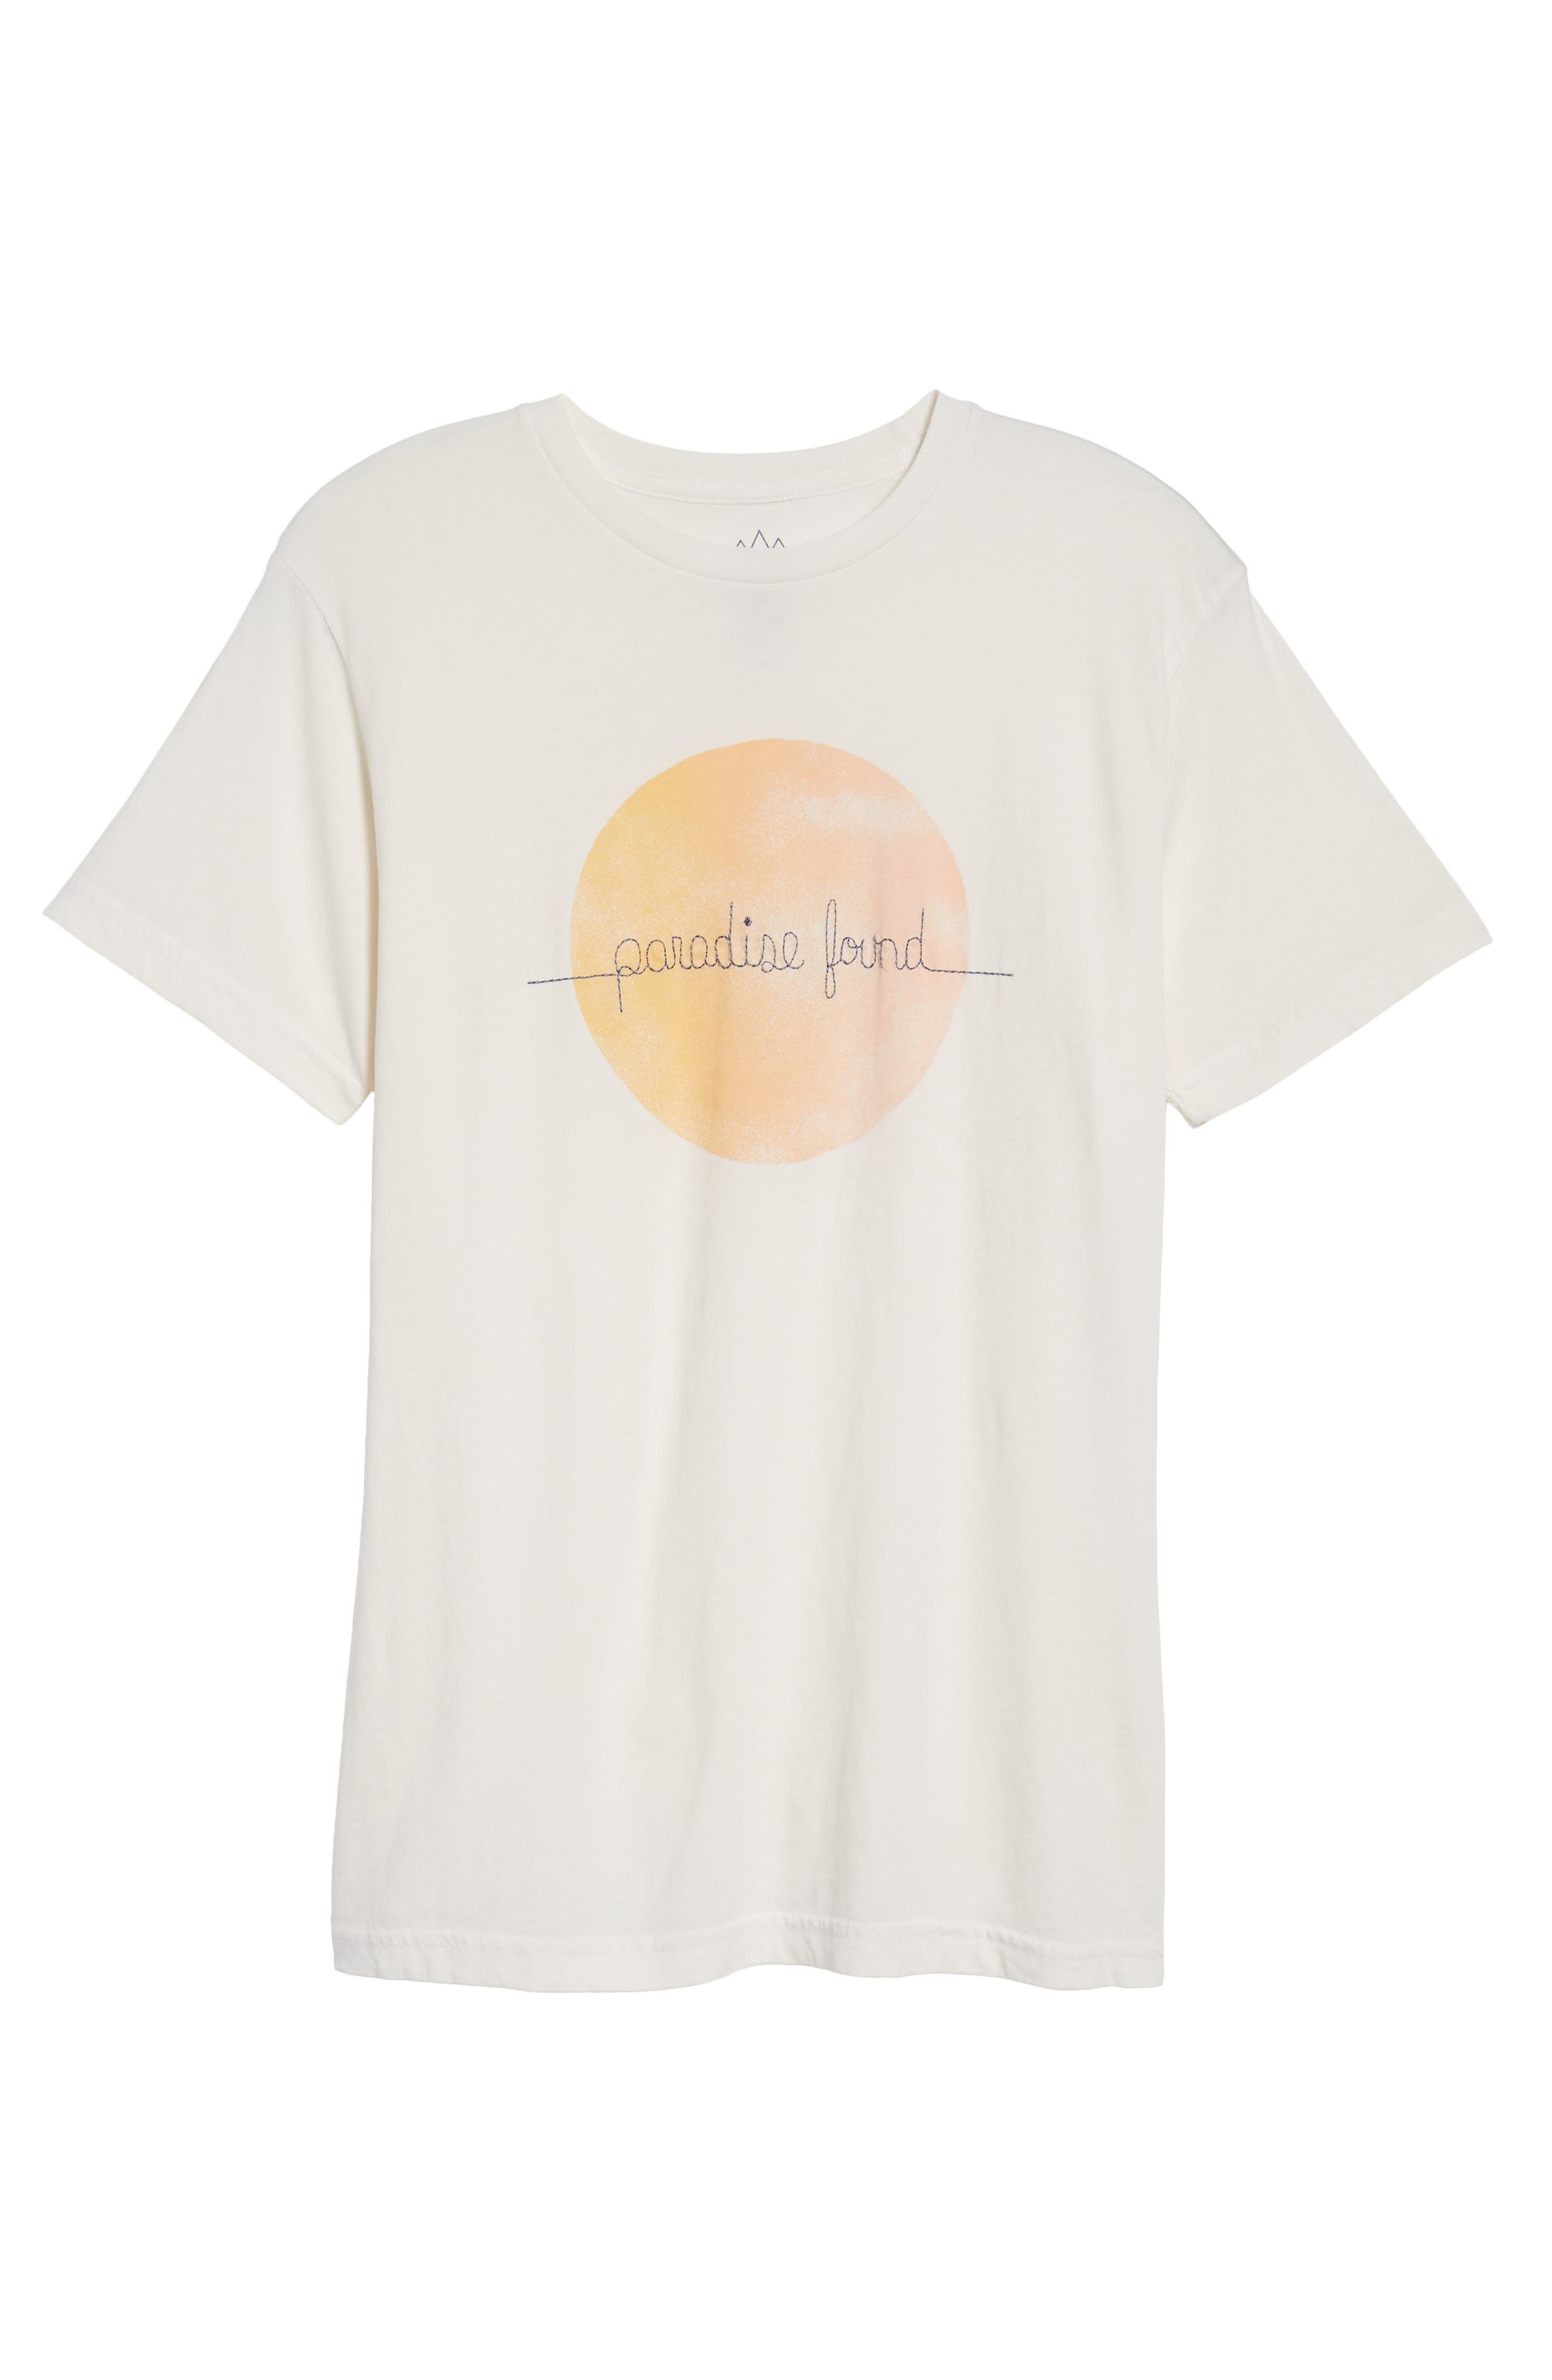 Paradise Found Embroidered T-Shirt,                             Alternate thumbnail 6, color,                             101